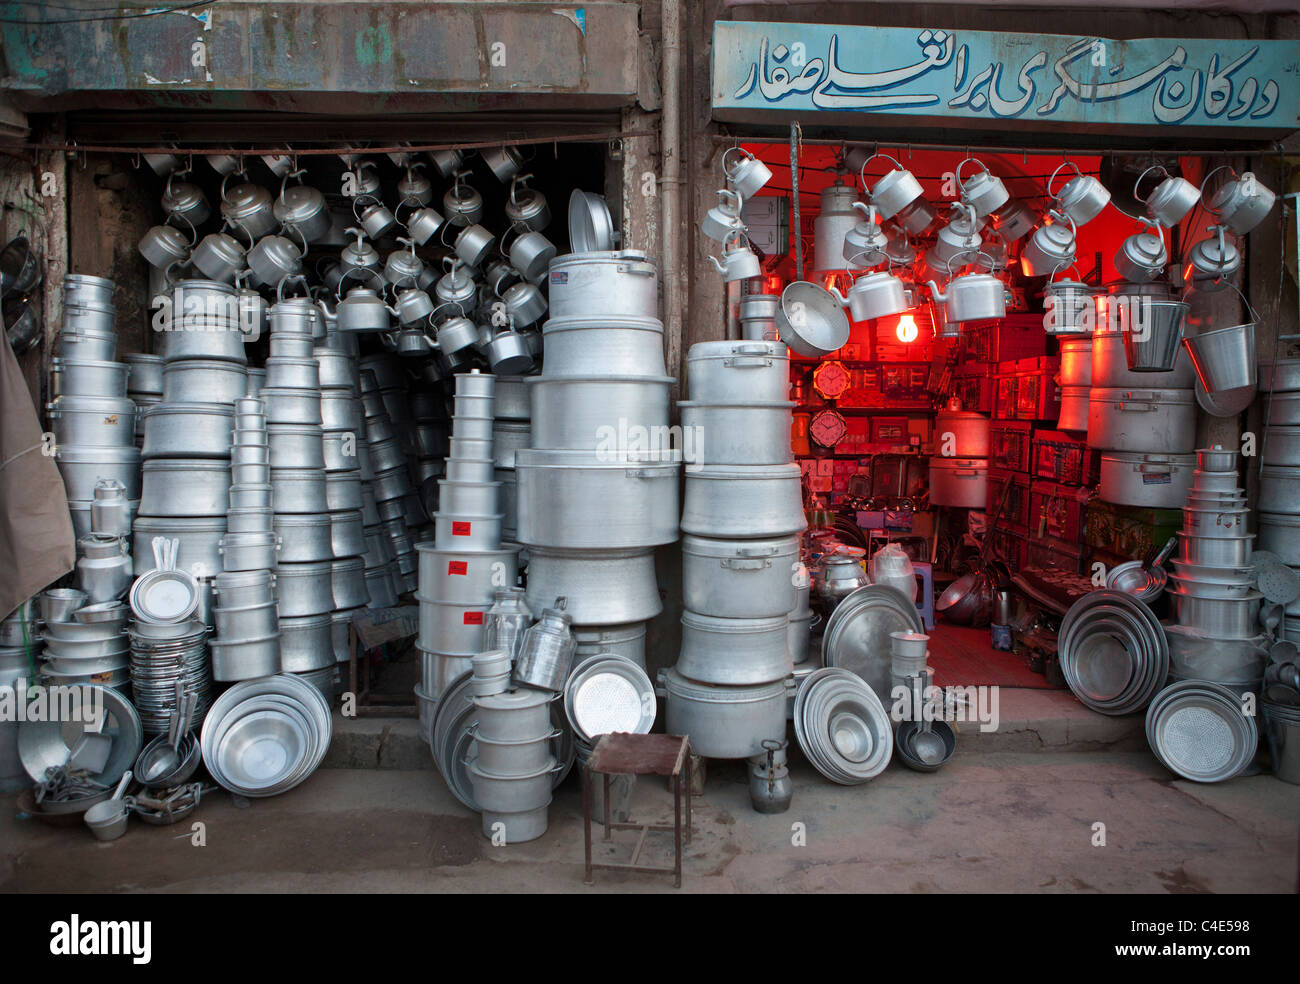 Pots And Pans Store Stock Photos & Pots And Pans Store Stock Images ...